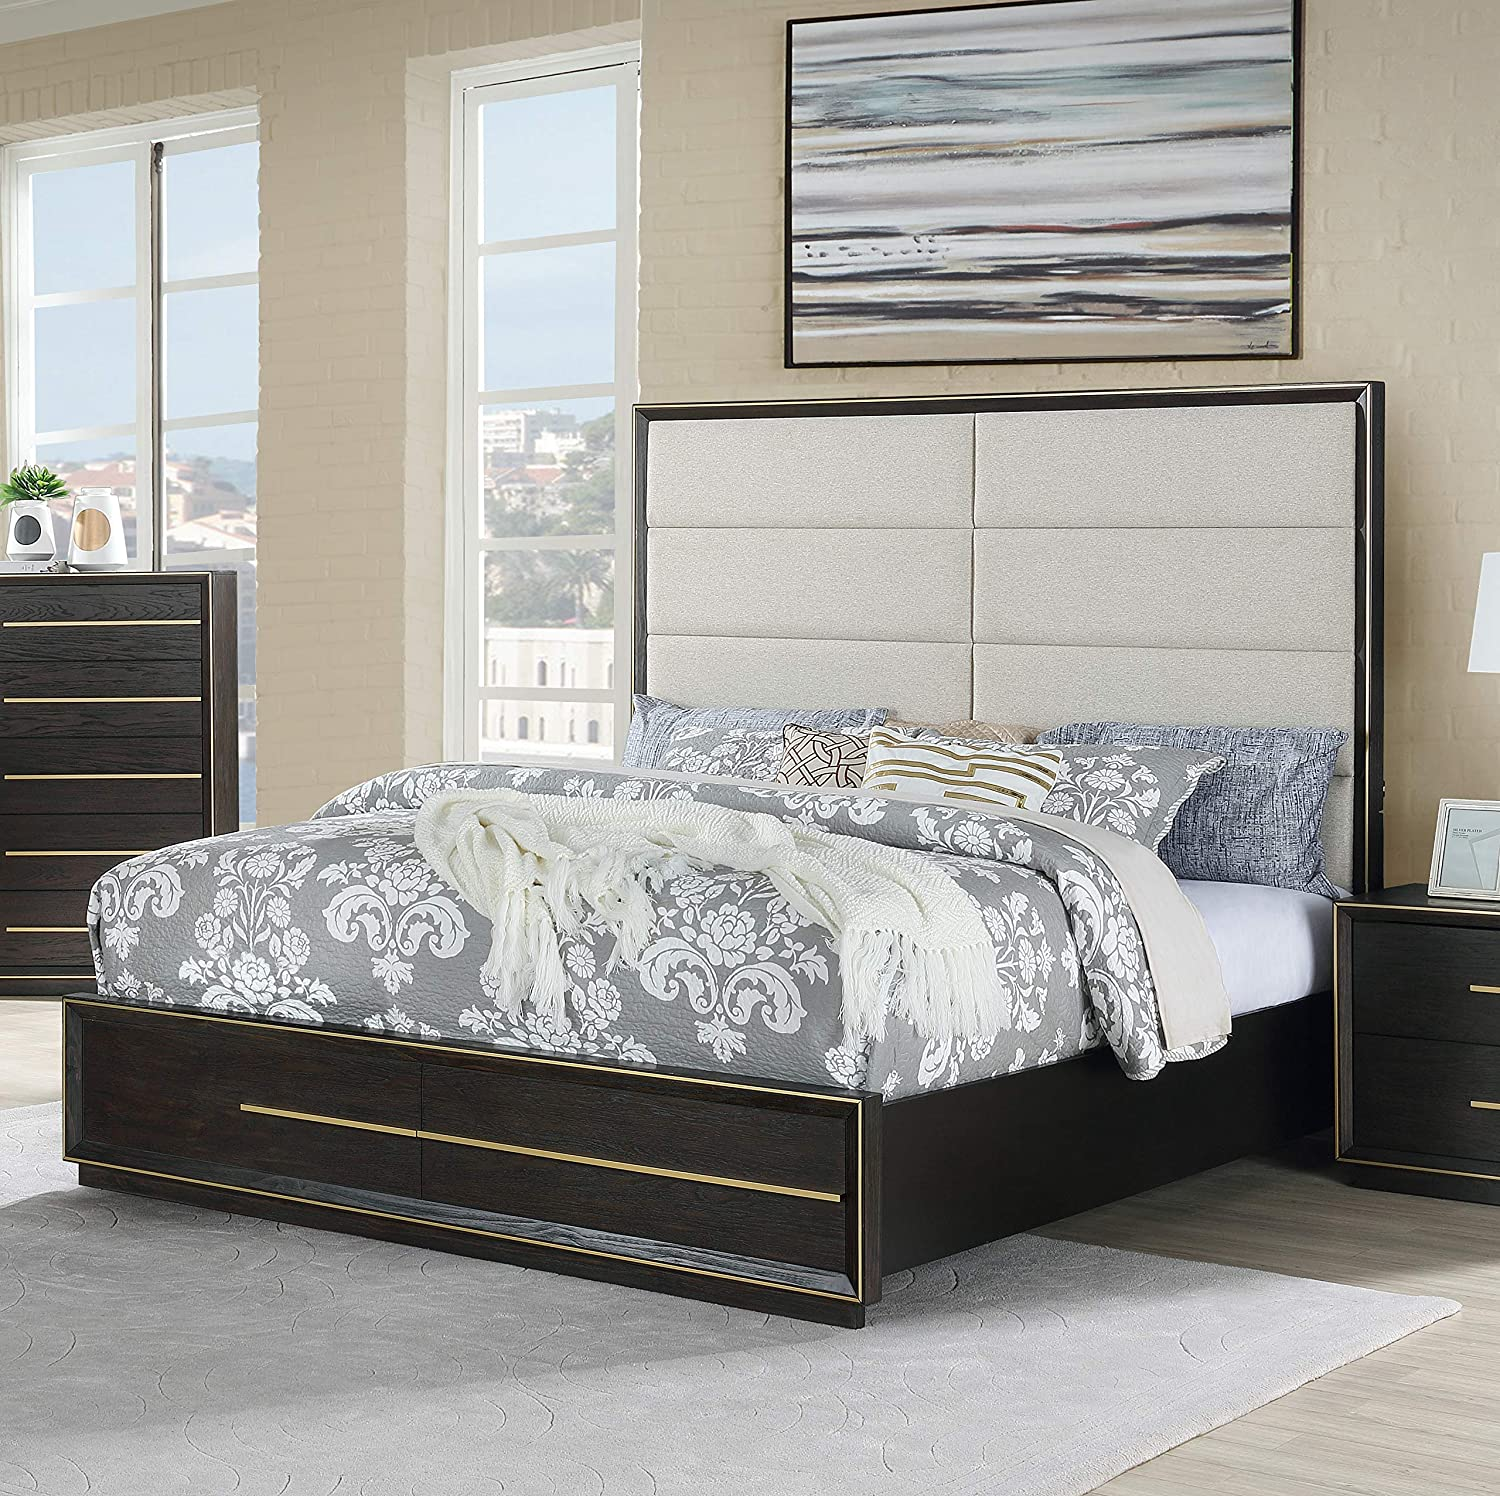 Roundhill Furniture Myory Contemporary Wood Upholstered Panel Bed With Usb Queen Espresso Furniture Decor